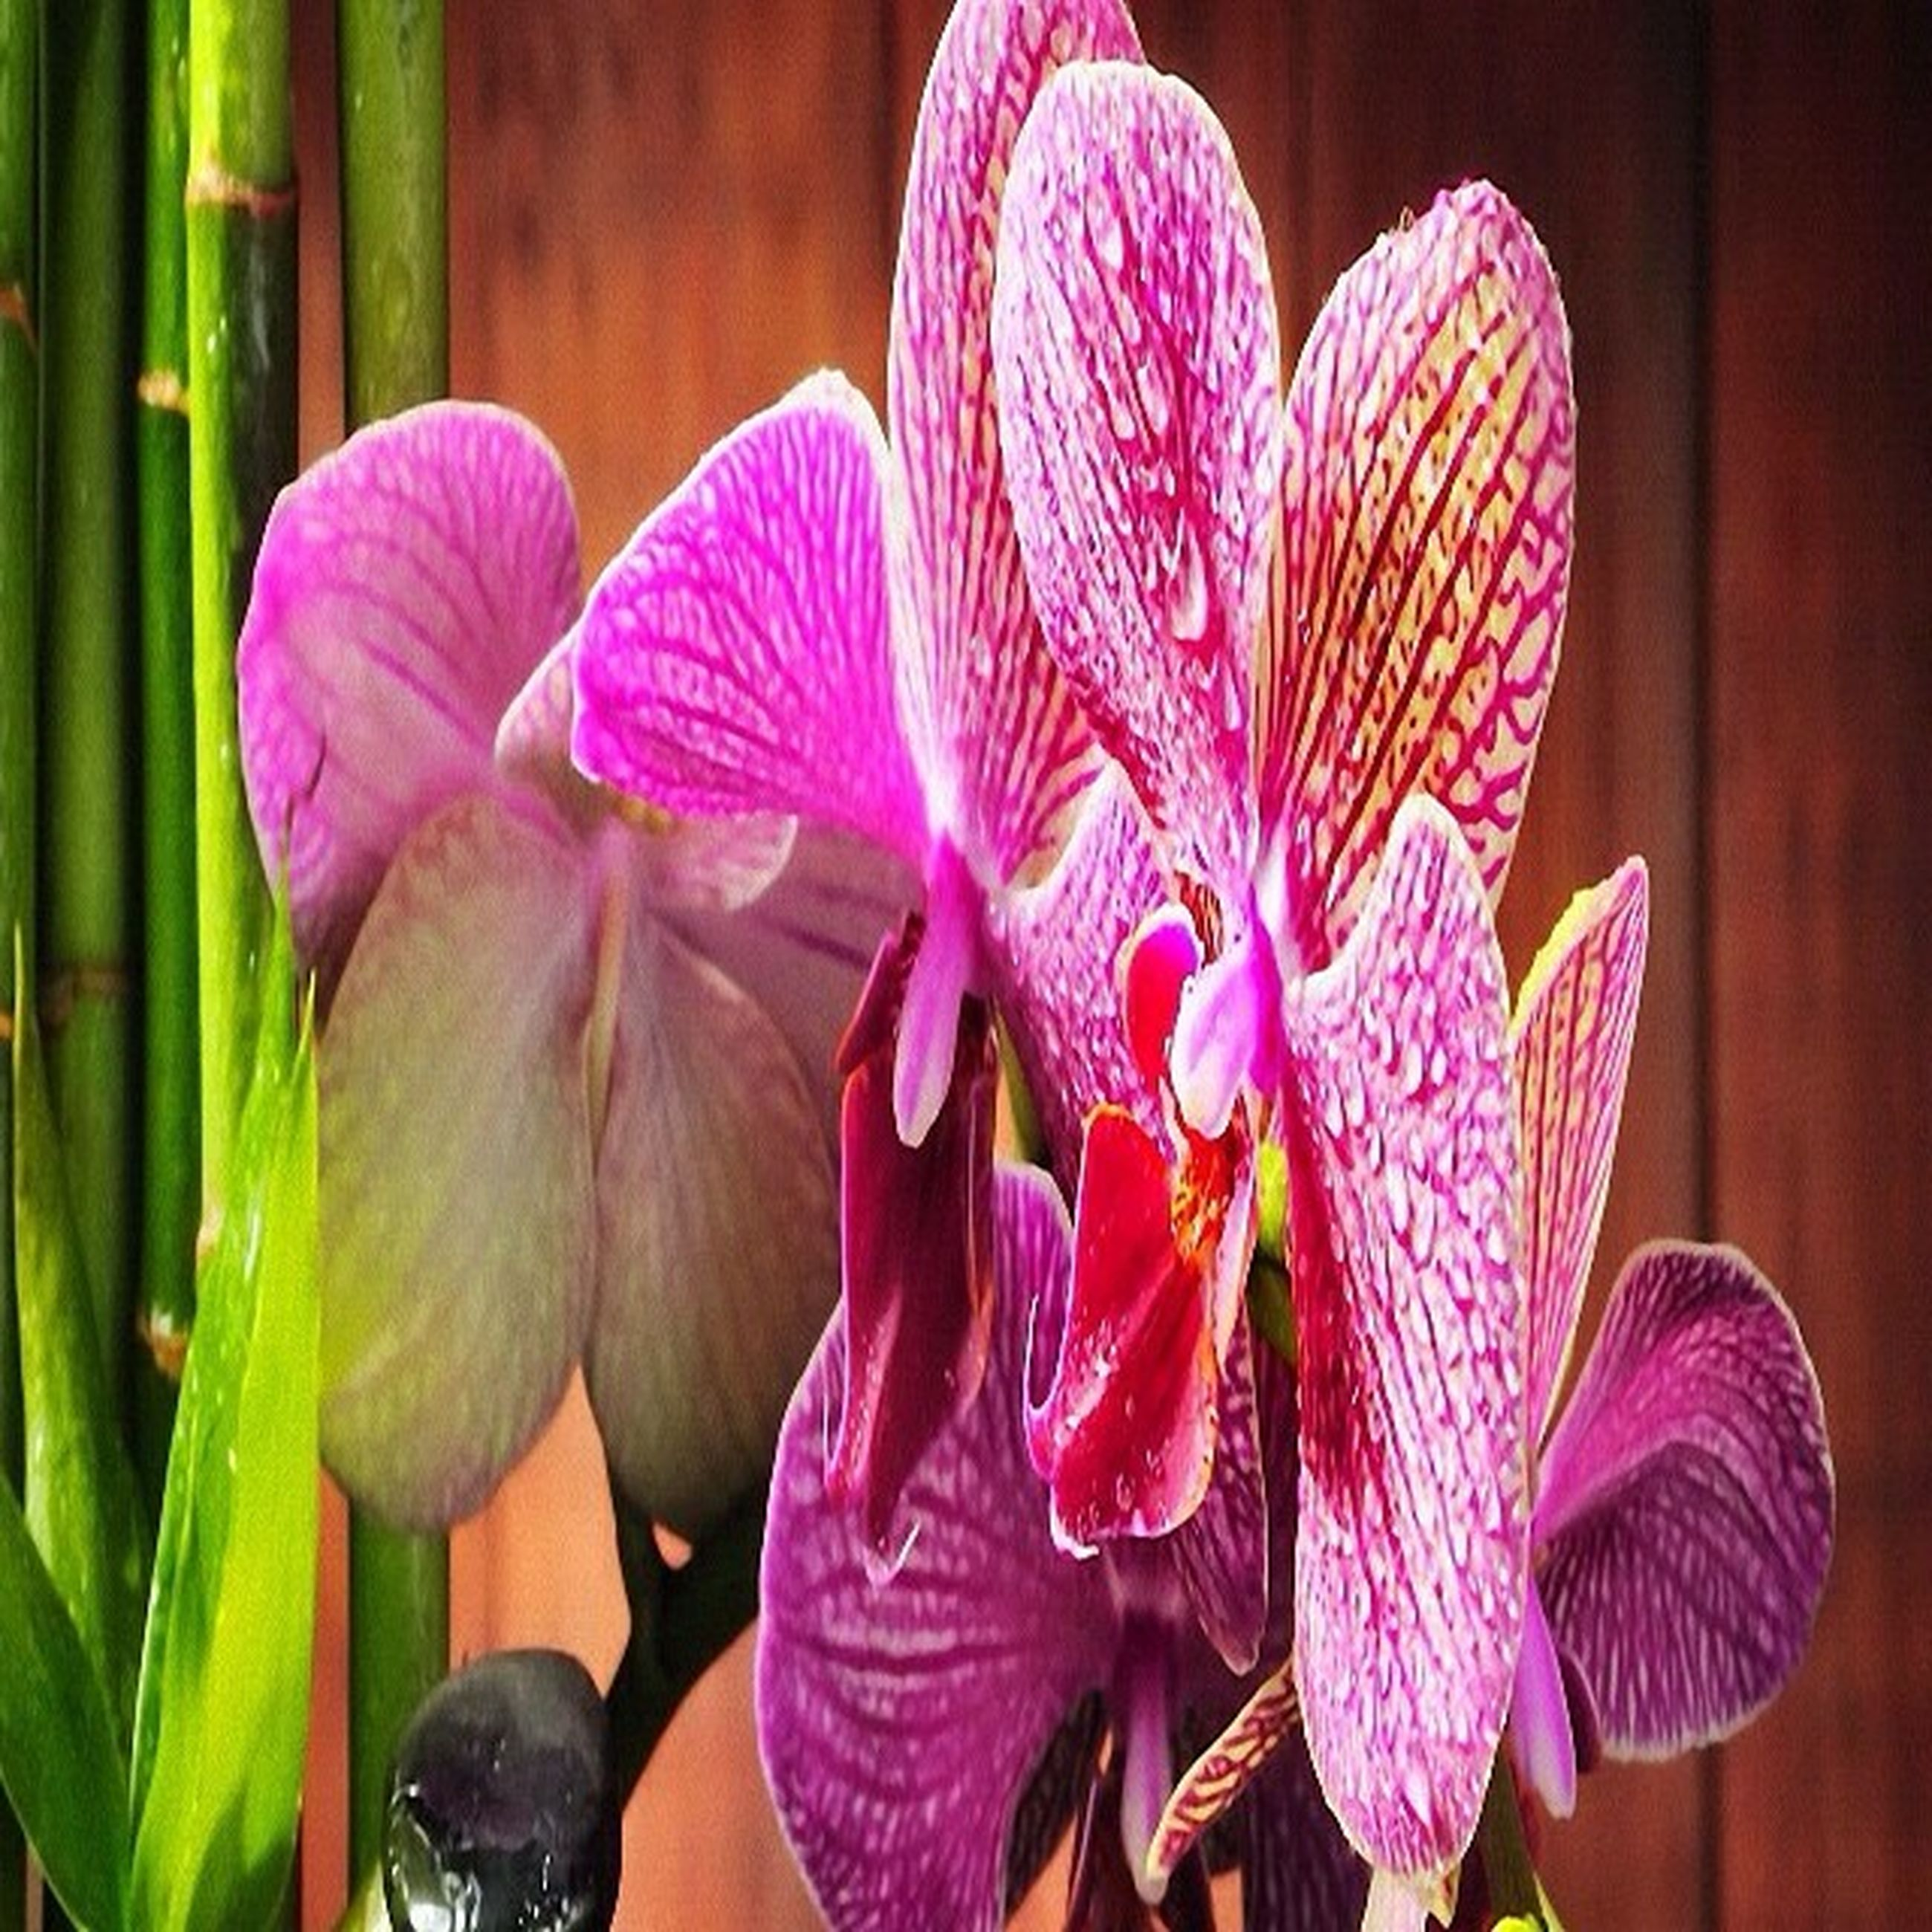 flower, petal, flower head, fragility, freshness, beauty in nature, close-up, pink color, orchid, growth, purple, blooming, nature, plant, focus on foreground, stamen, no people, pollen, single flower, in bloom